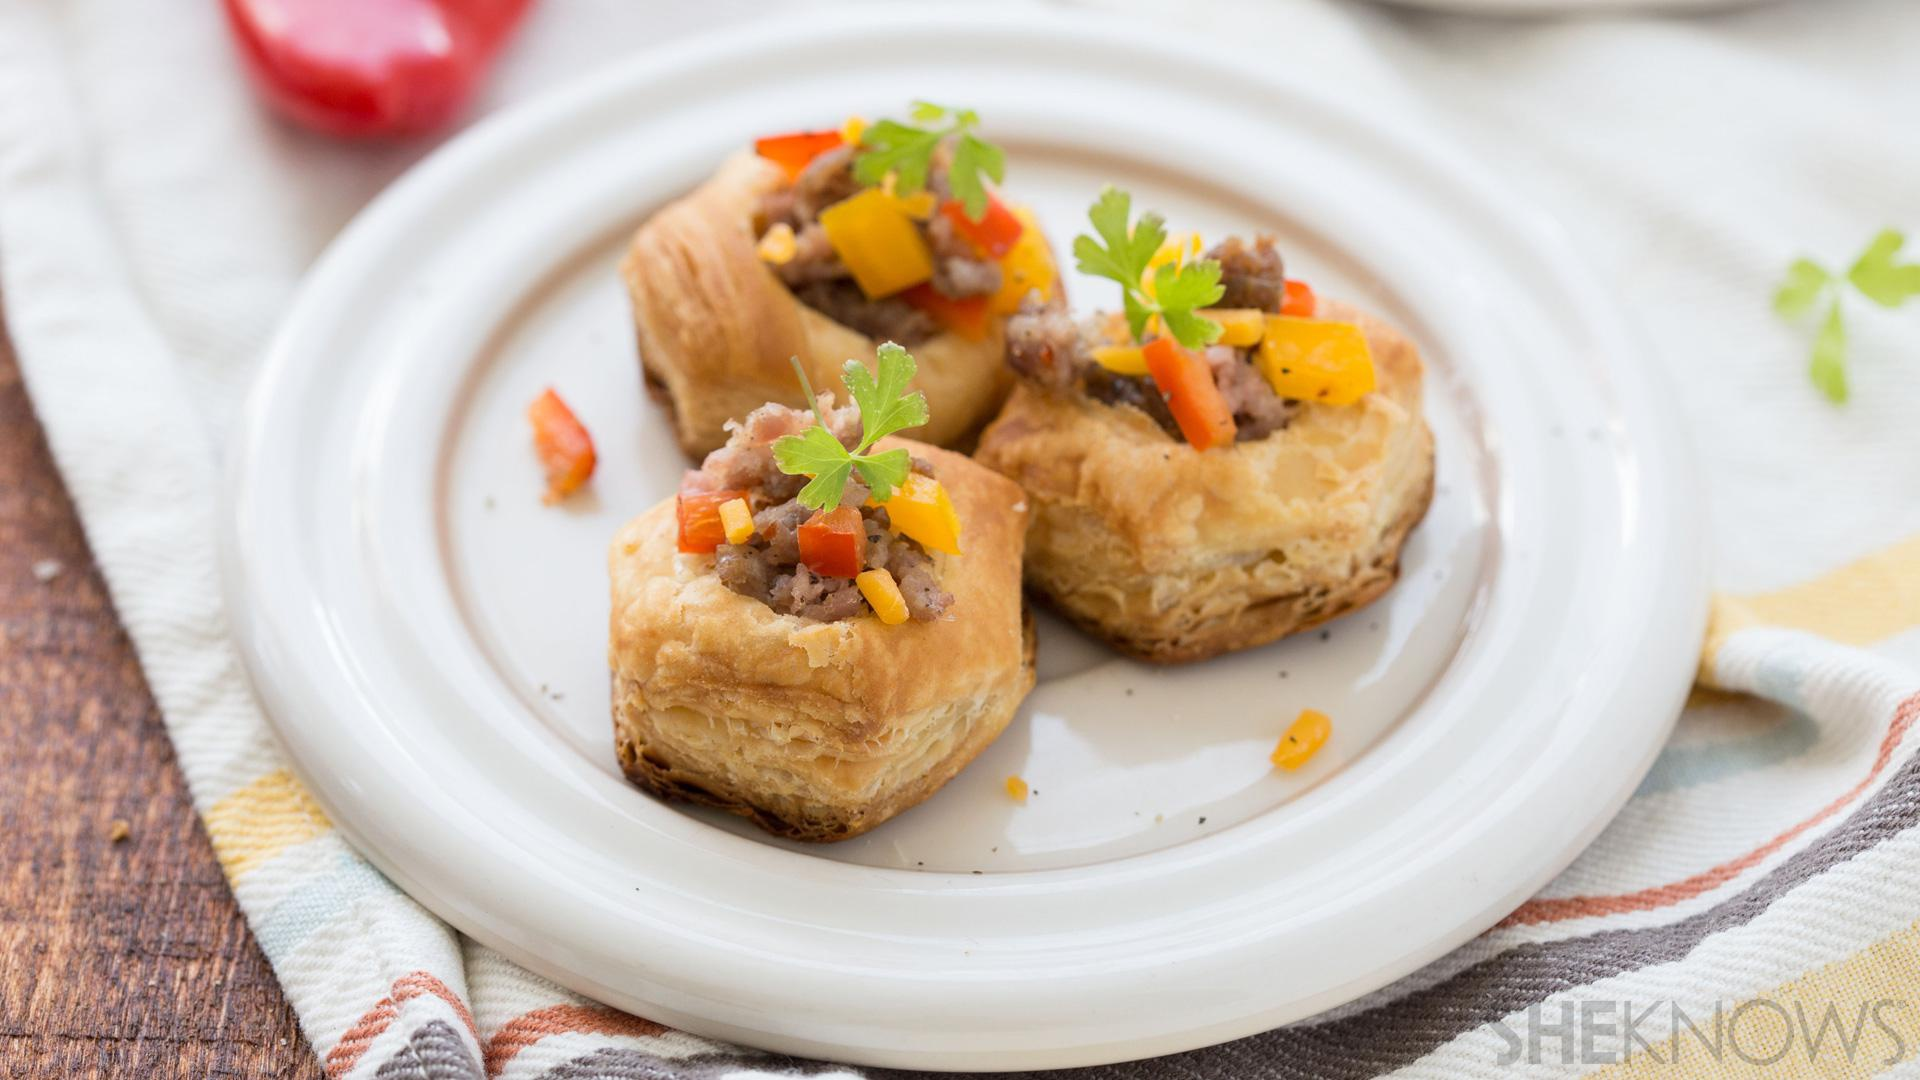 Try these spicy sausage tarts in puff pastry cups for an adorable appetizer